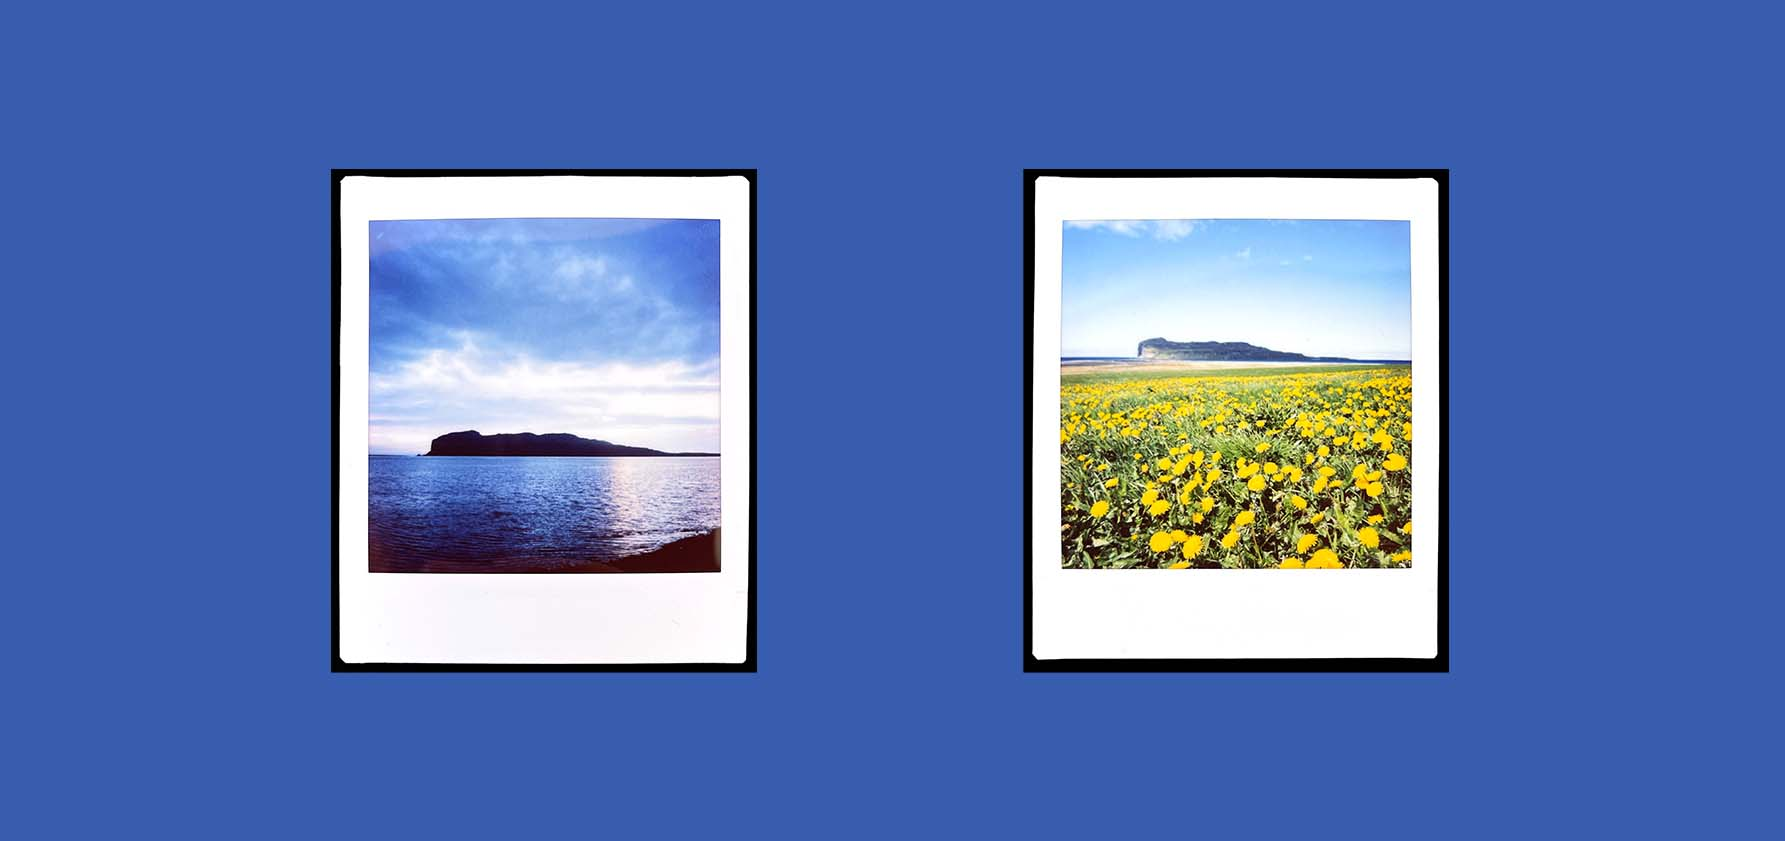 Two photographs taken in Iceland in June 2021when Susan Morelock was artist in residence at the Baer Art Center.